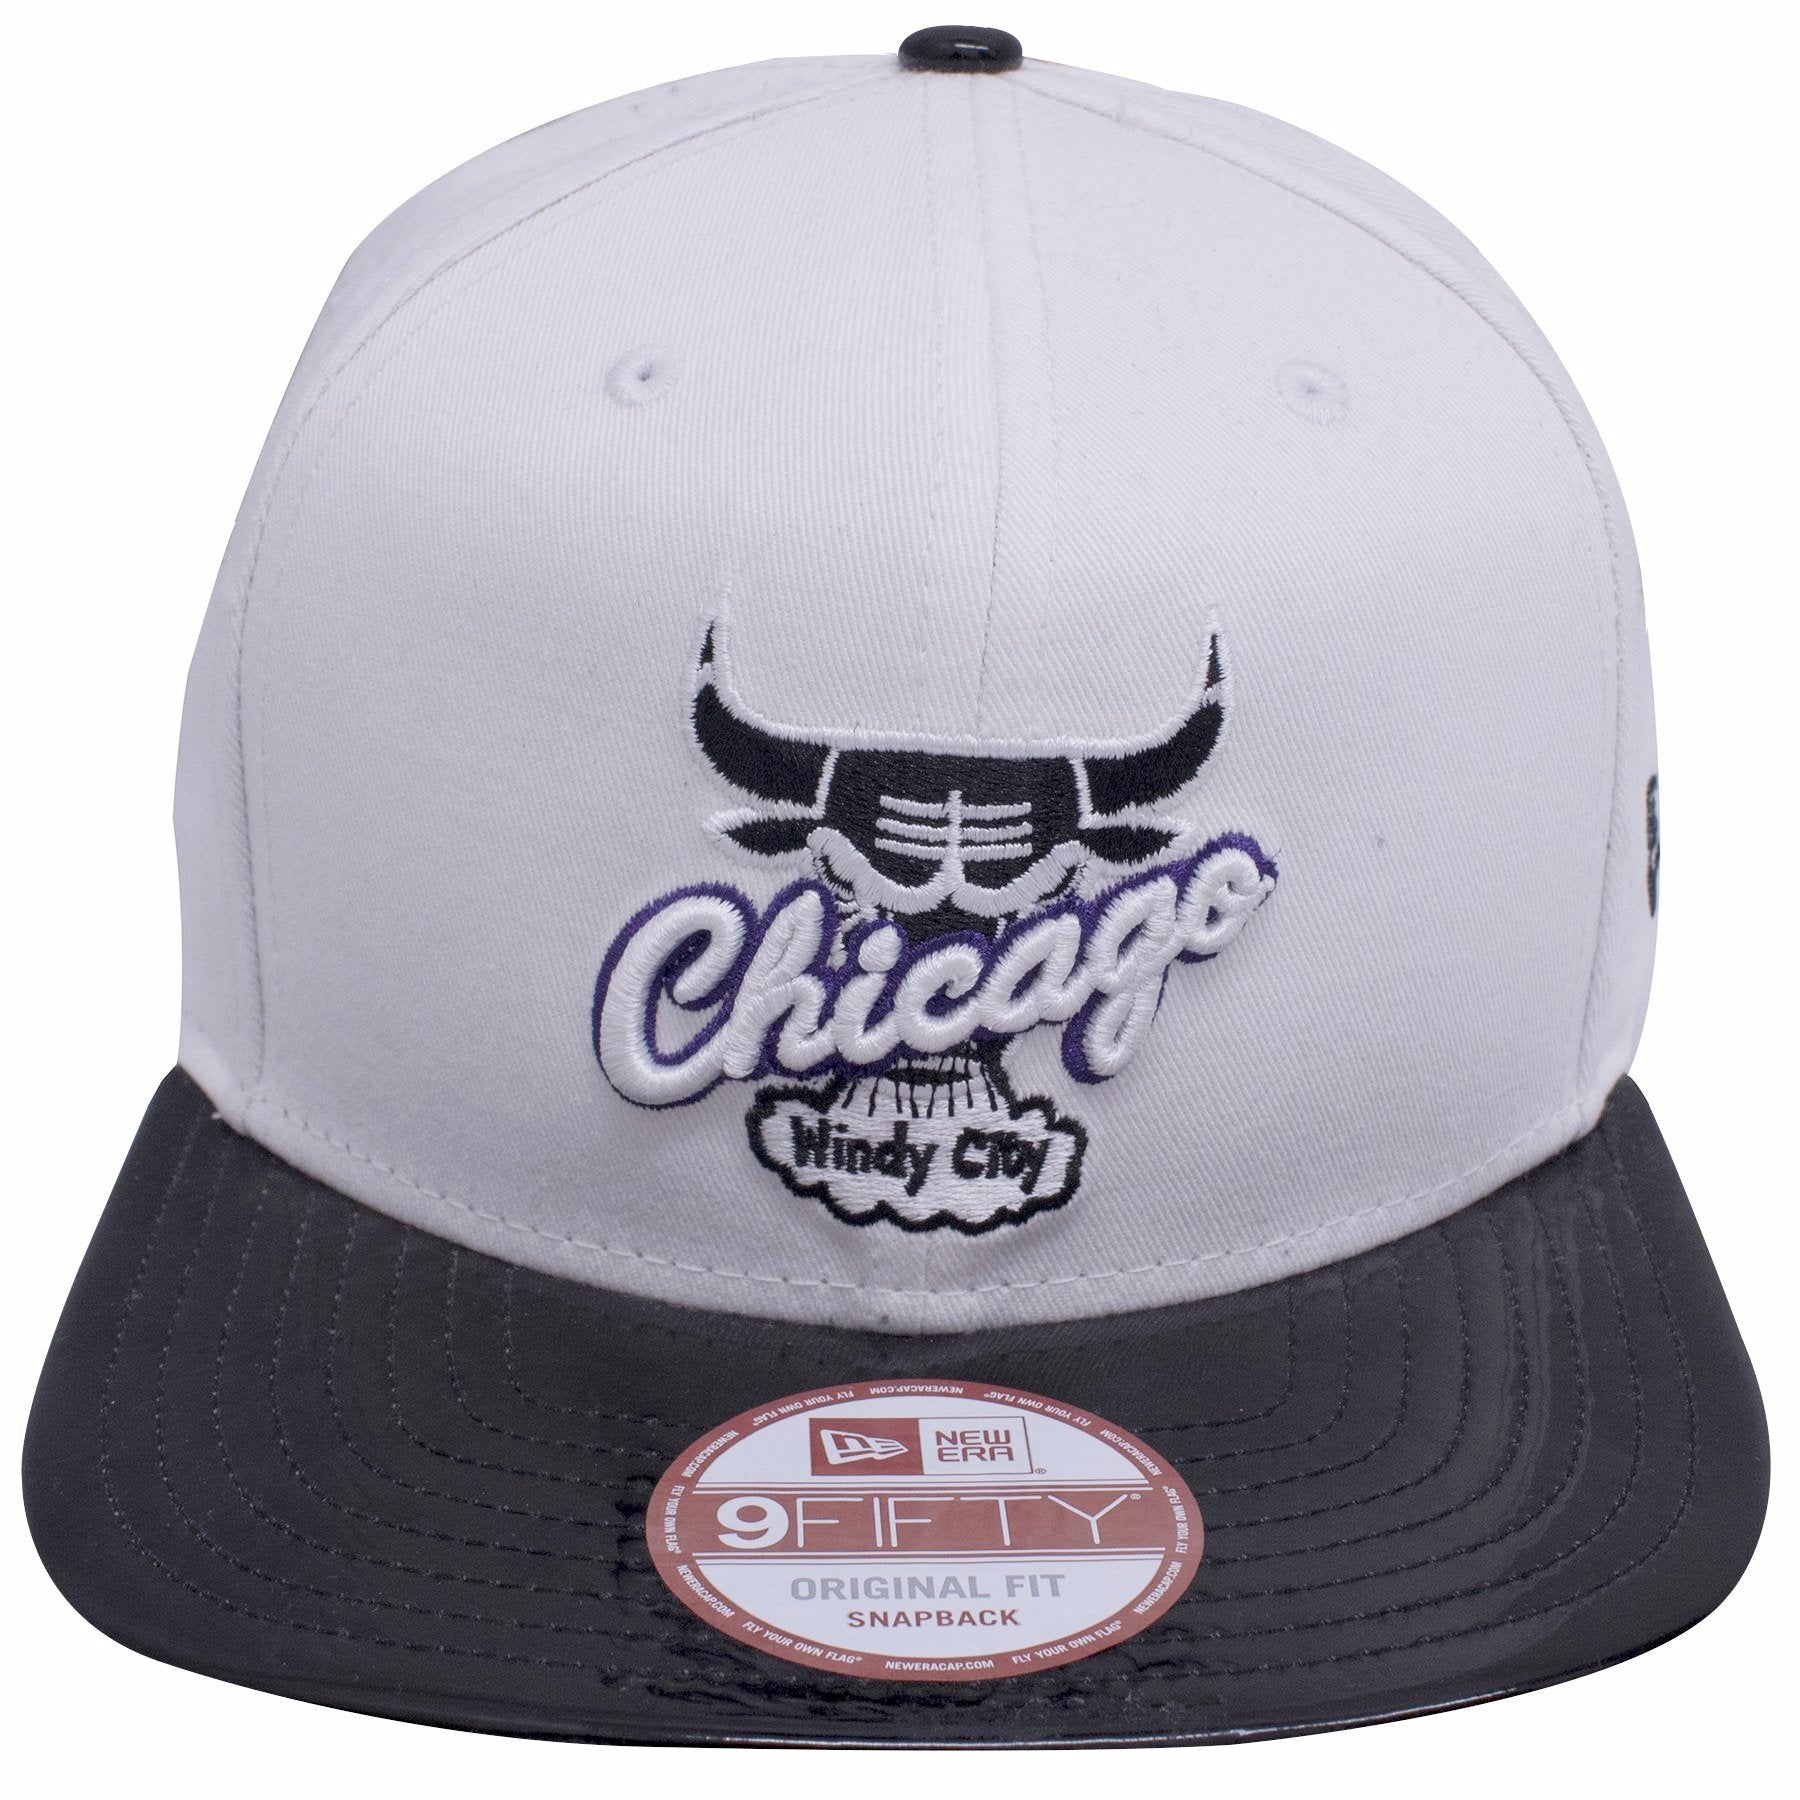 6dca15140941 on the front of the Chicago Bulls Air Jordan Retro 11 Concord sneaker  matching snapback hat